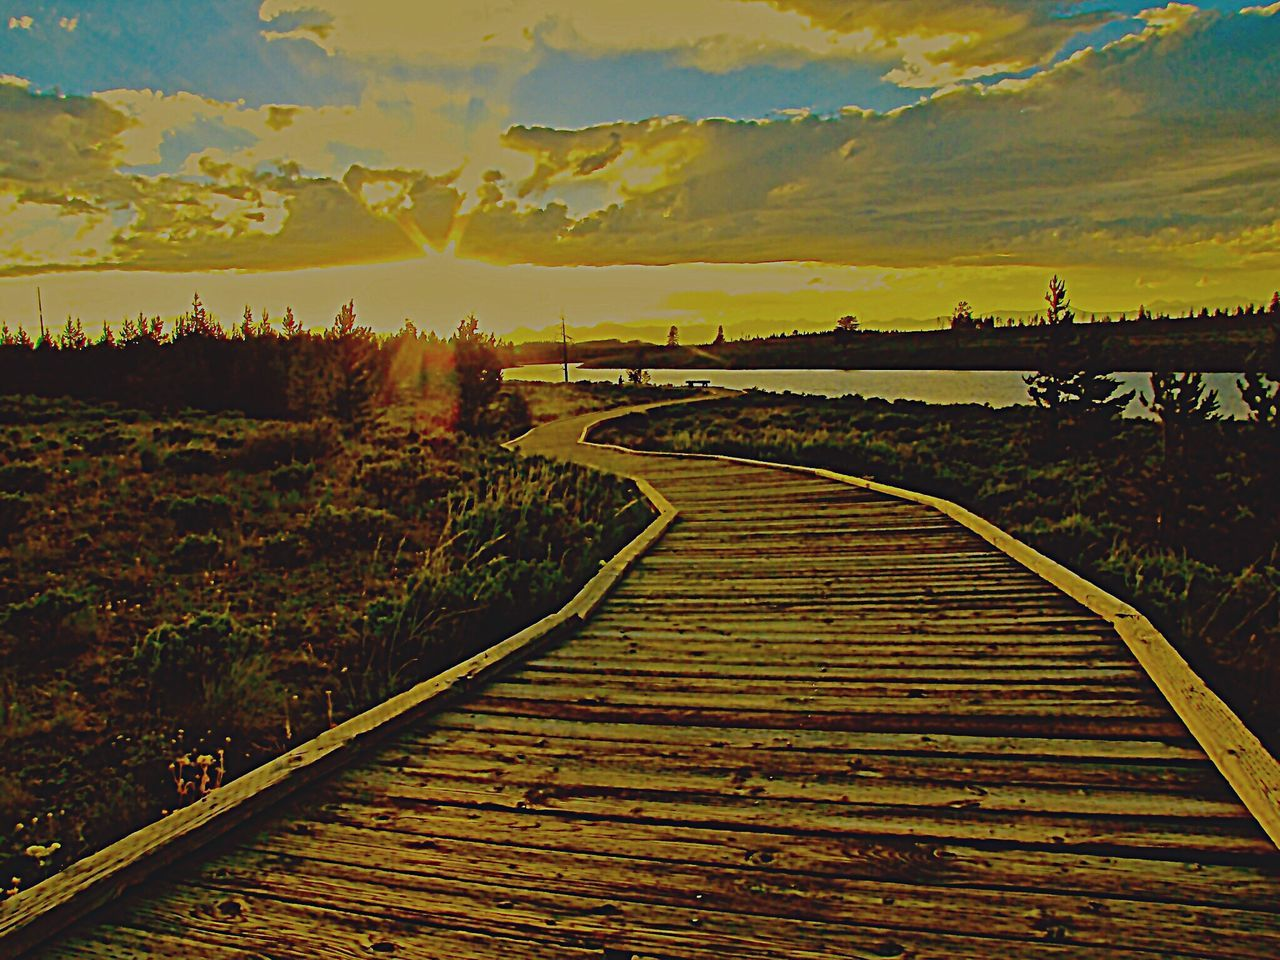 43 Golden Moments Golden Sunset Gold Relecrion Golden Lights Wooden Pathway